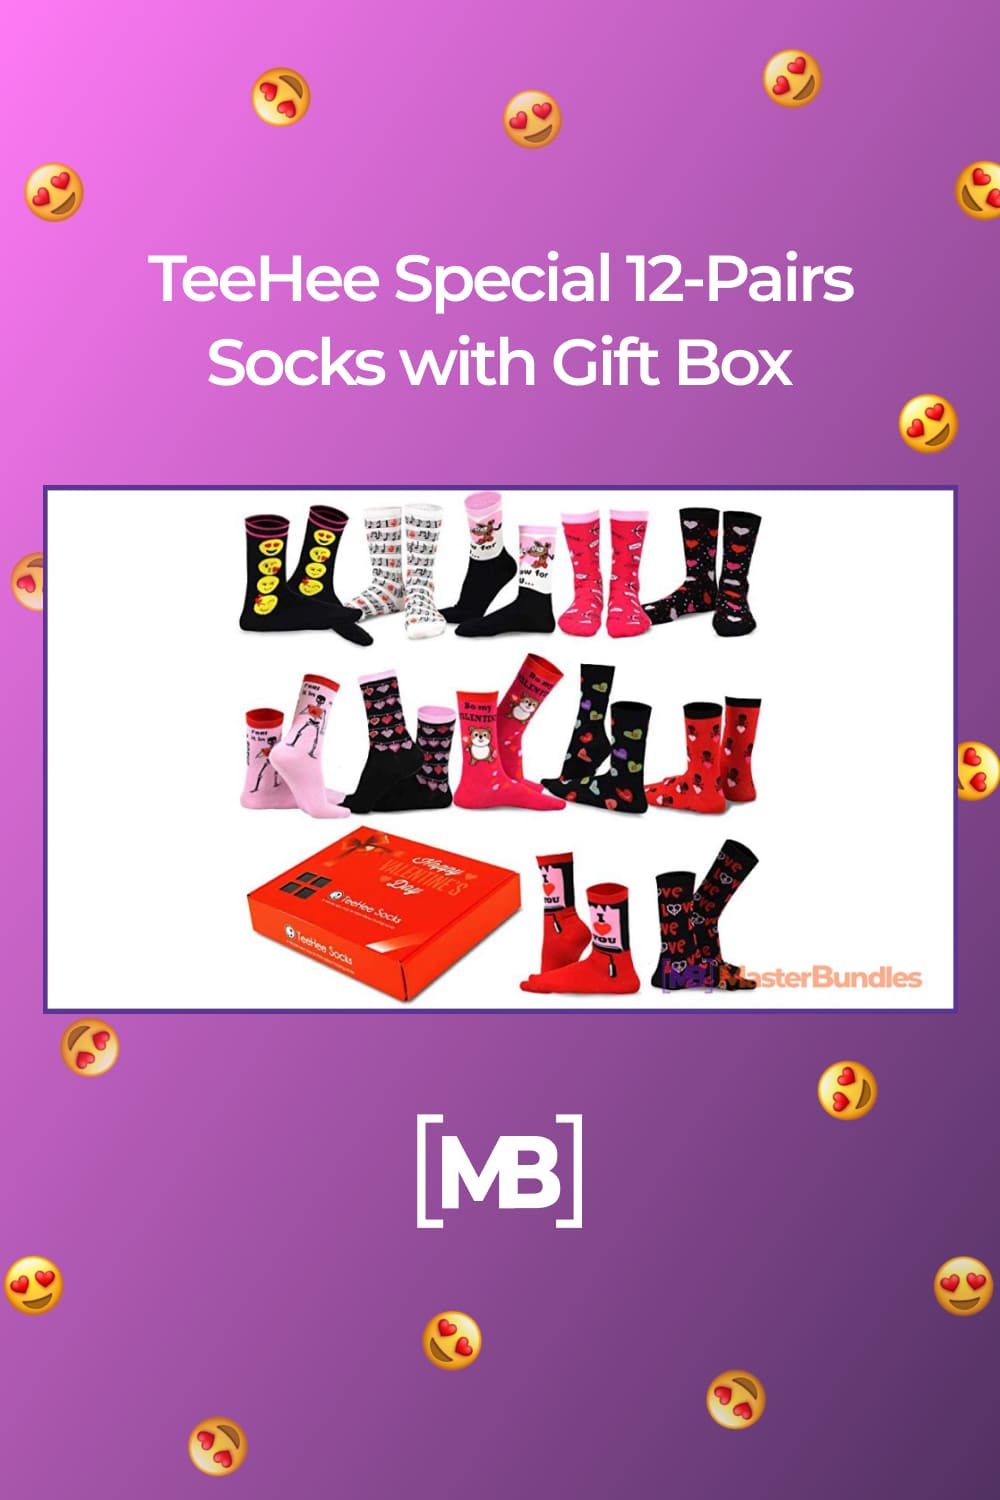 Gift Box includes 12 pairs of socks packaged neatly into a special-event gift box that matches the socks inside.